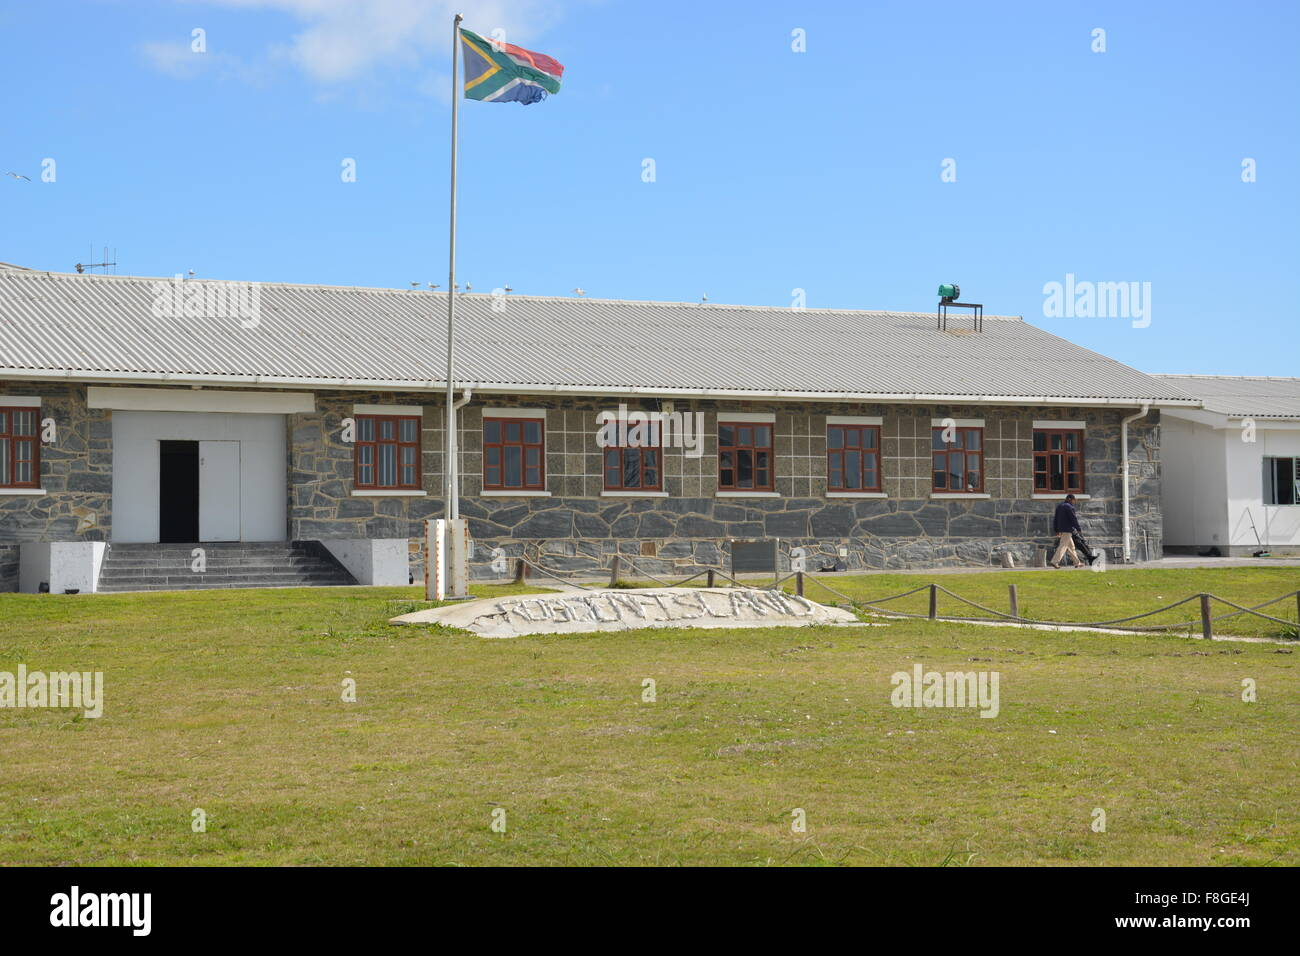 Central building at the Robben Island prison off Cape Town South Africa - Stock Image